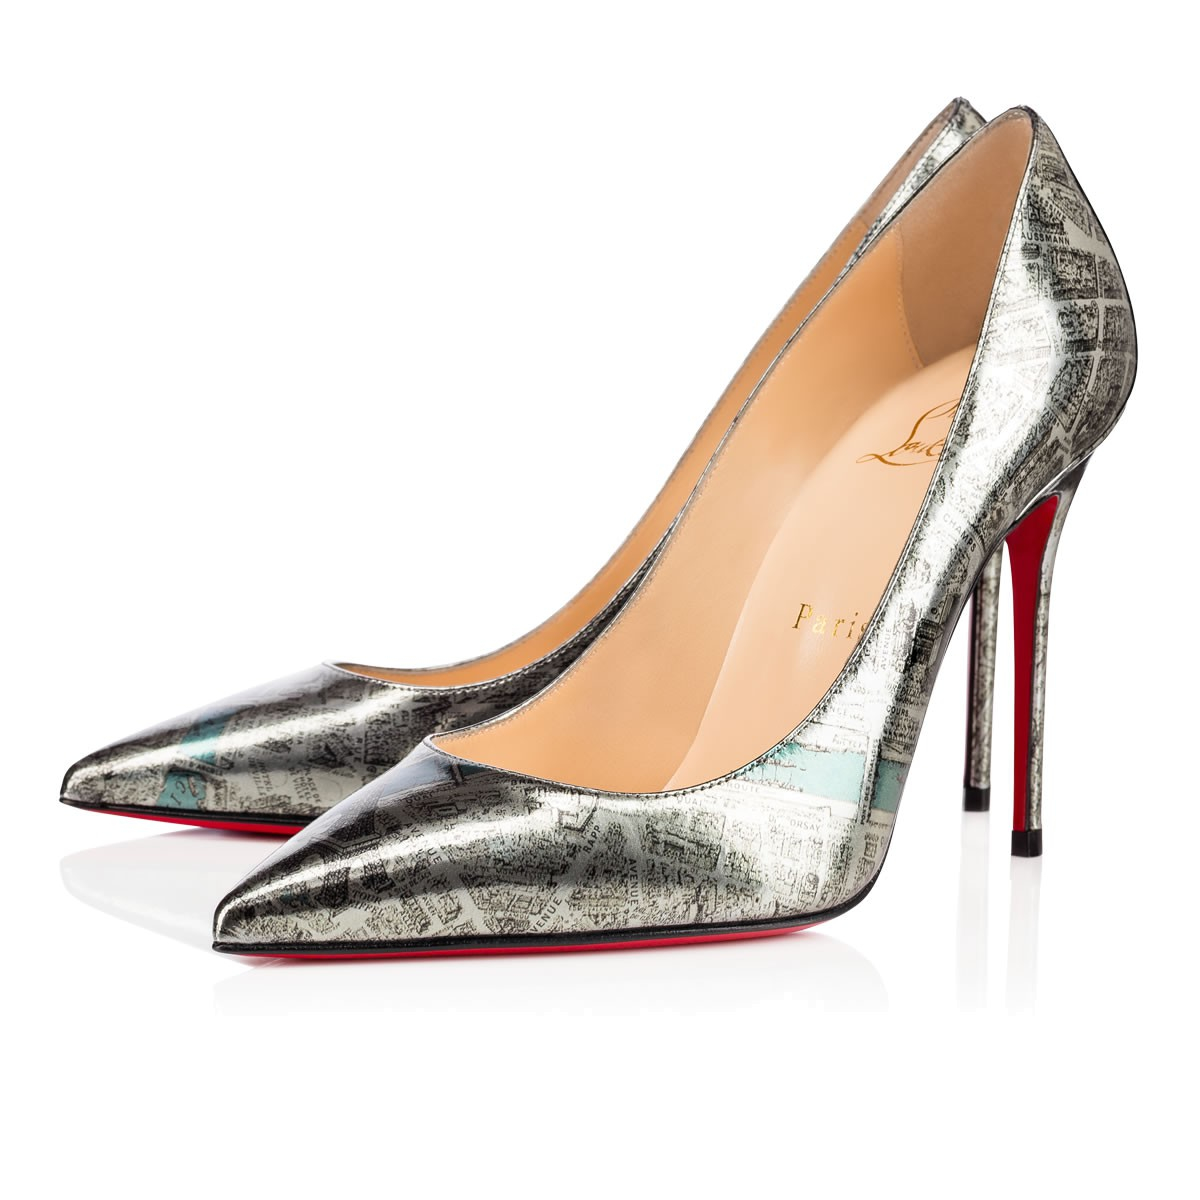 3477462f25f Lyst - Christian Louboutin Decollete 554 Plan De Paris in Metallic